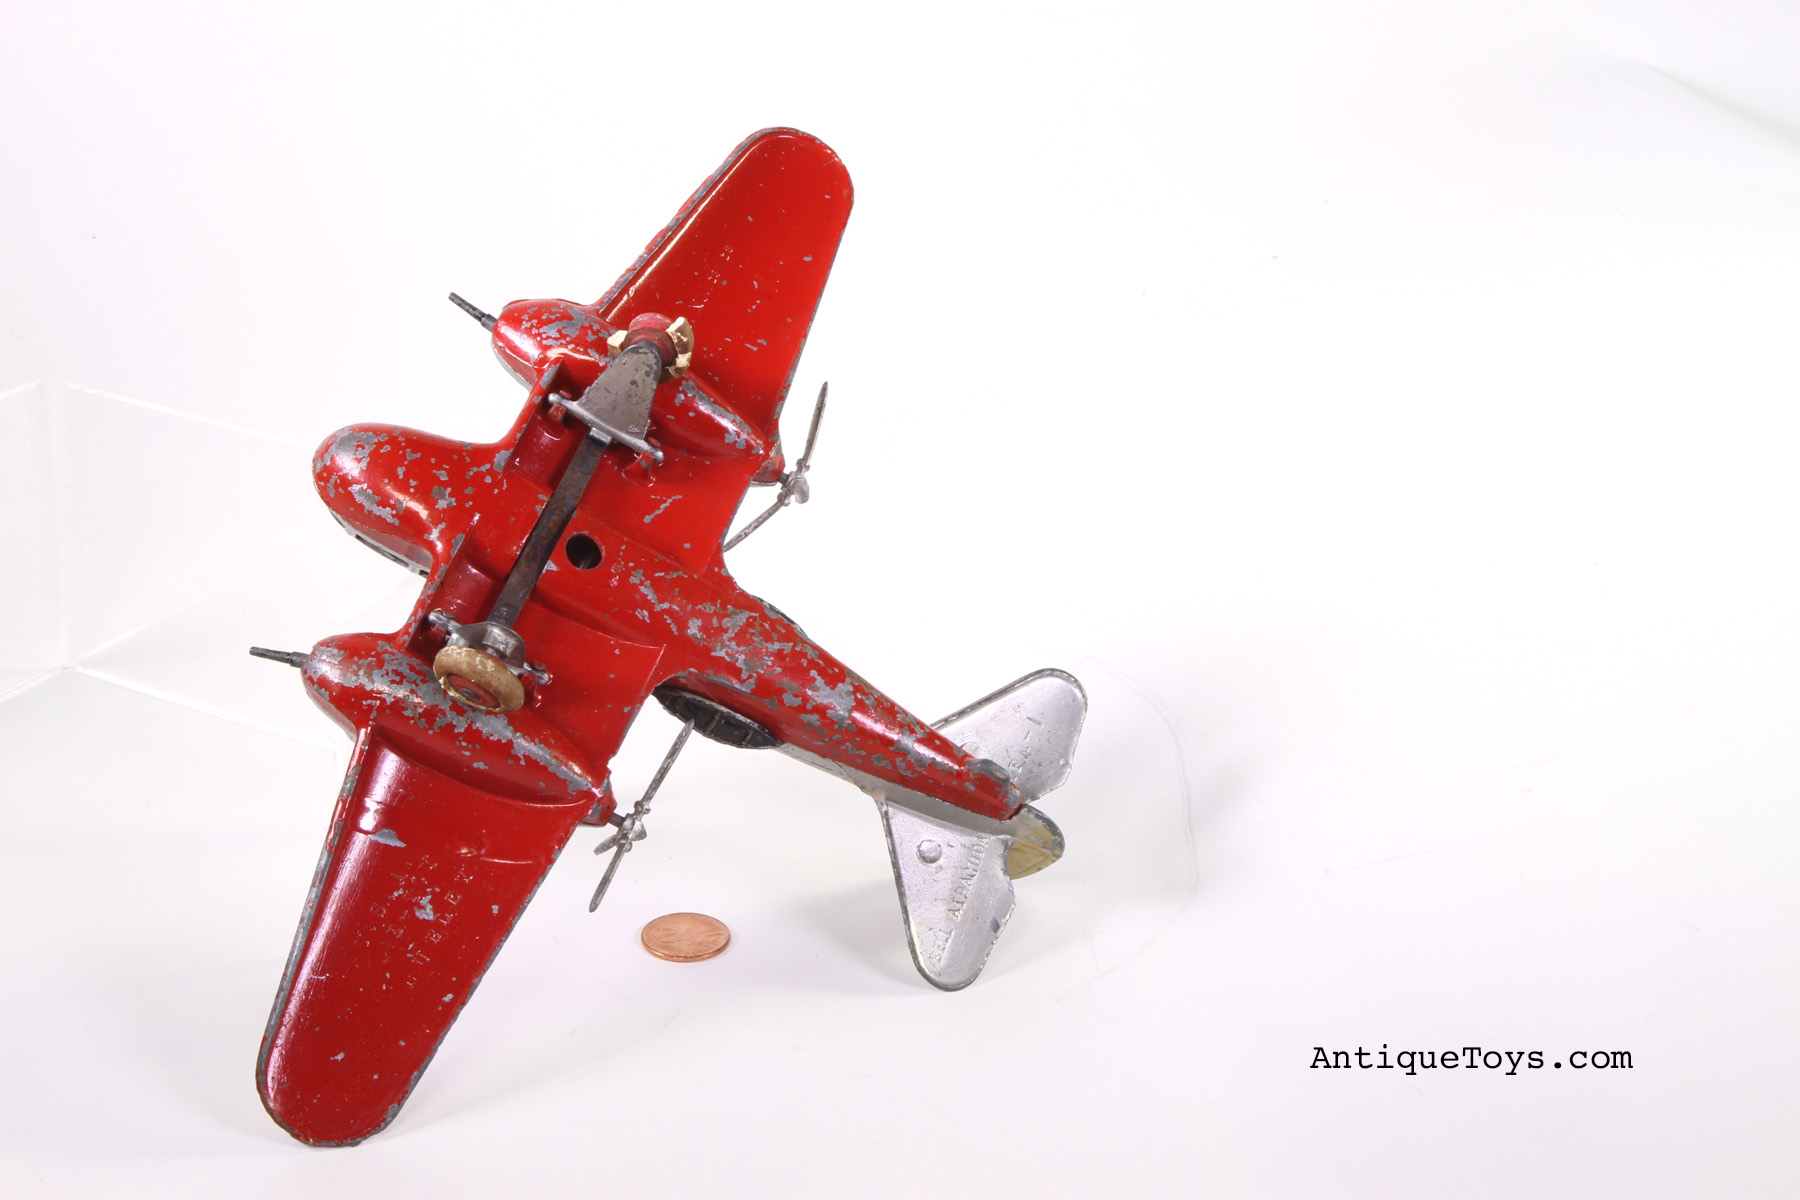 Hubley Bell Aircuda Xfm 1 Airplane Sold Antique Toys